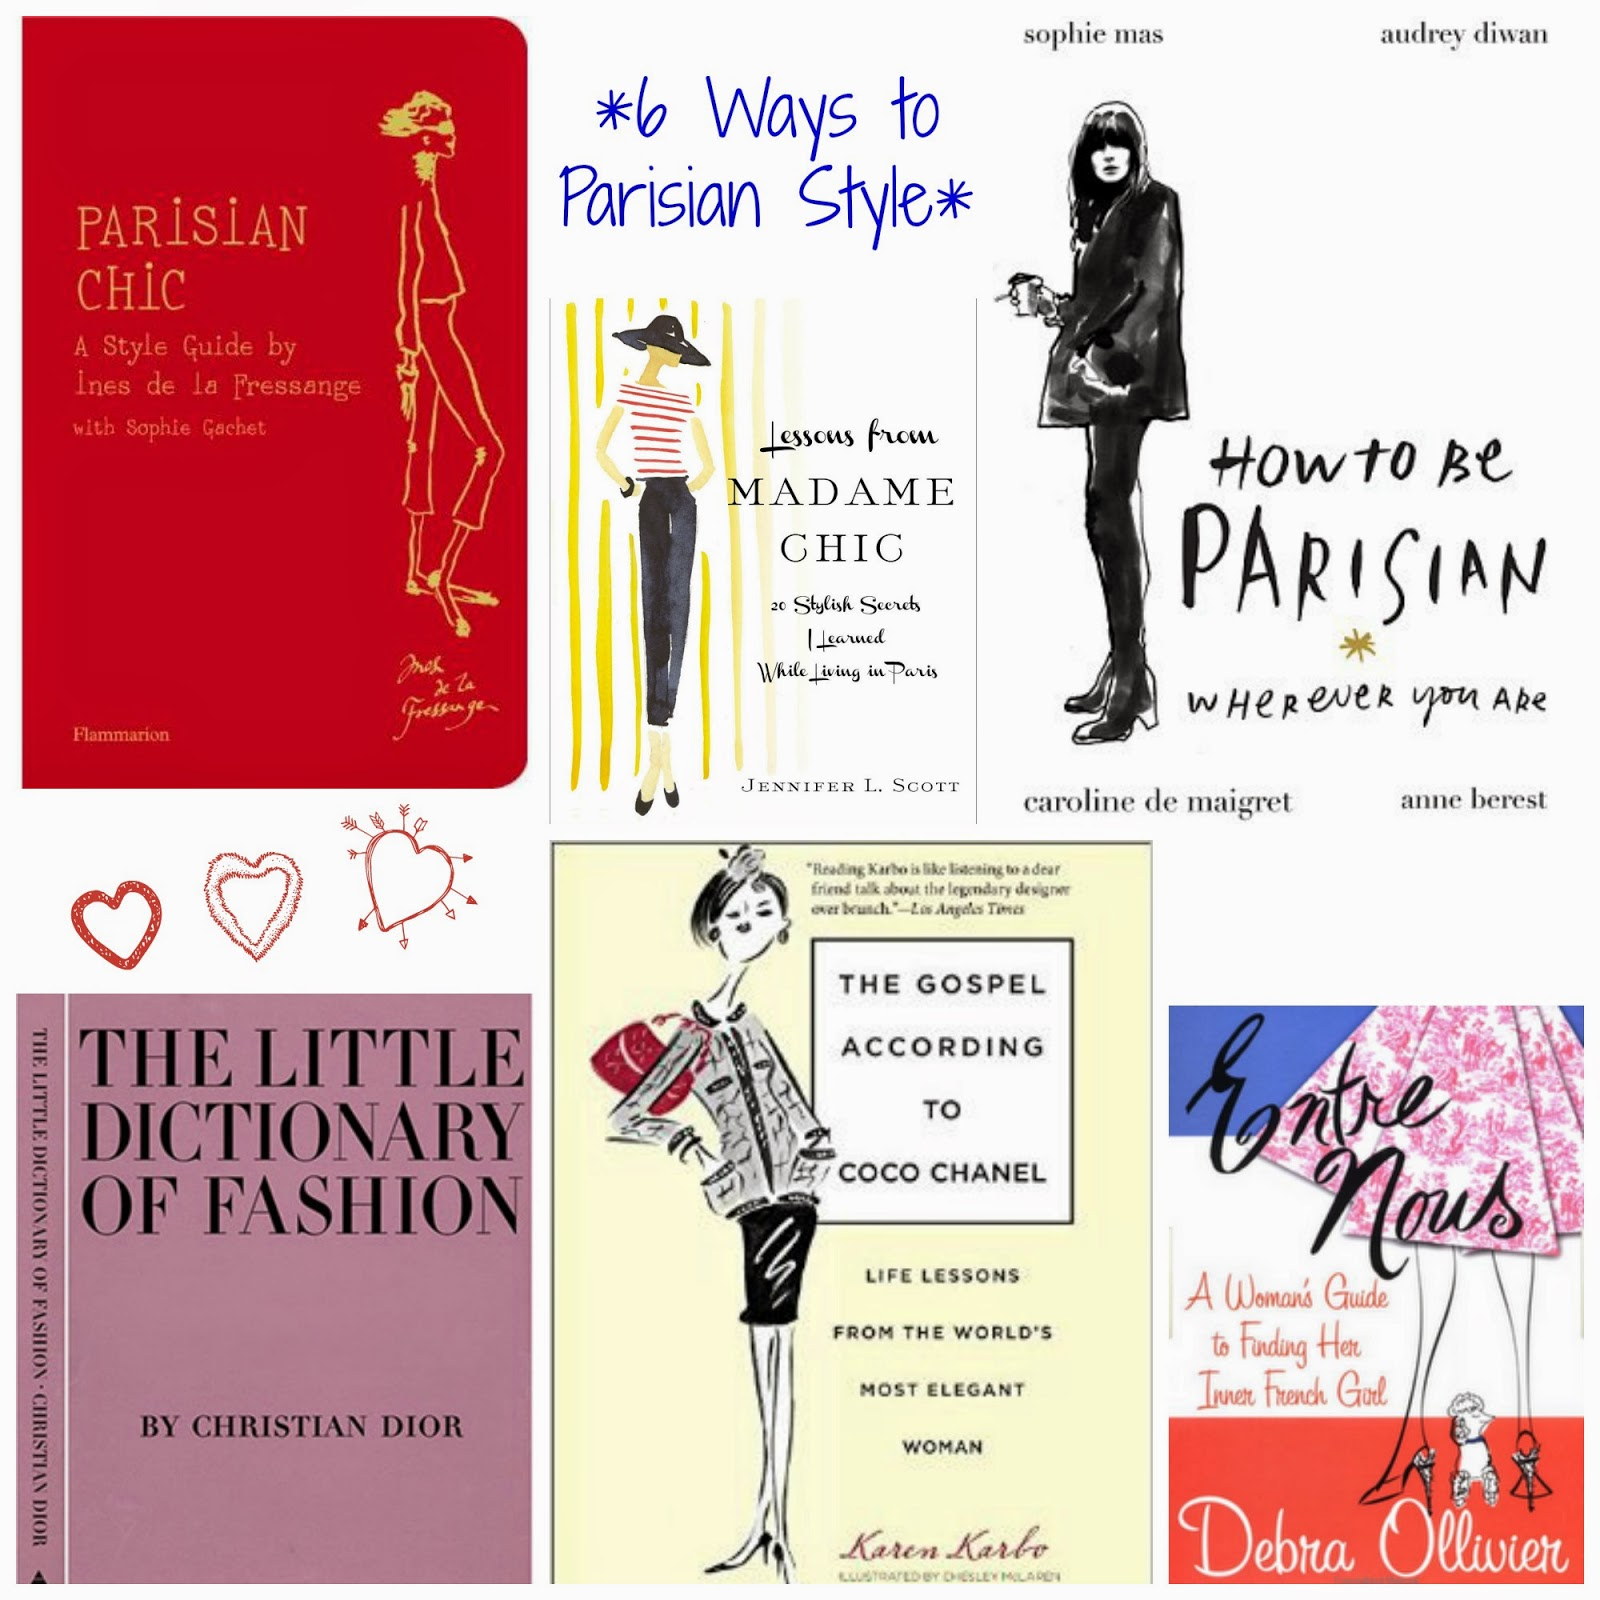 mamasVIB | V. I. BOOKCLUB: Le Chic - my fave French fashion style books | Paris fashion week | chanel |chanel bag | fashion PFW | autumn/winter 2015/16 | french fashion books | coco | dior | parisian chic | parisian style | french fashion | effortless fashion | cafe | brasserie gabrielle | french style | french woman | franophile | mamasVIb | blog | french books